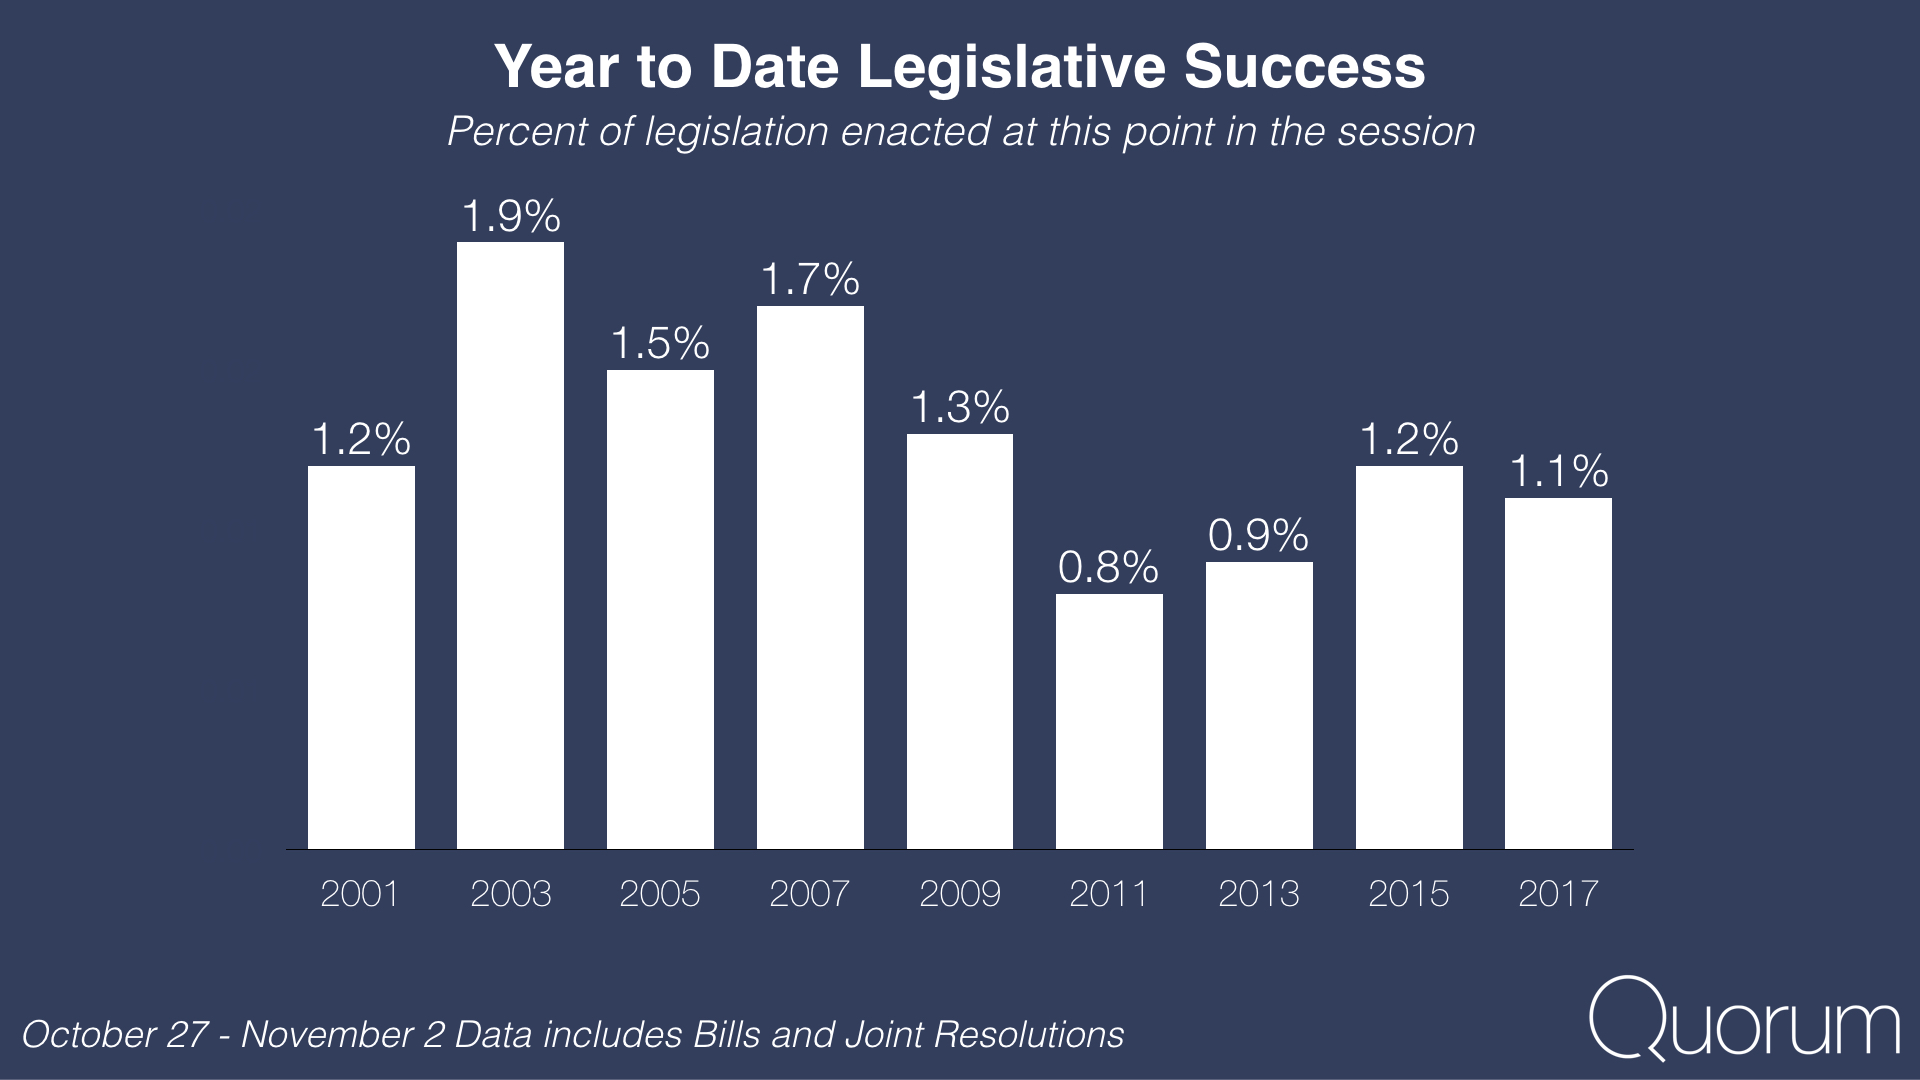 Year to date legislative success.